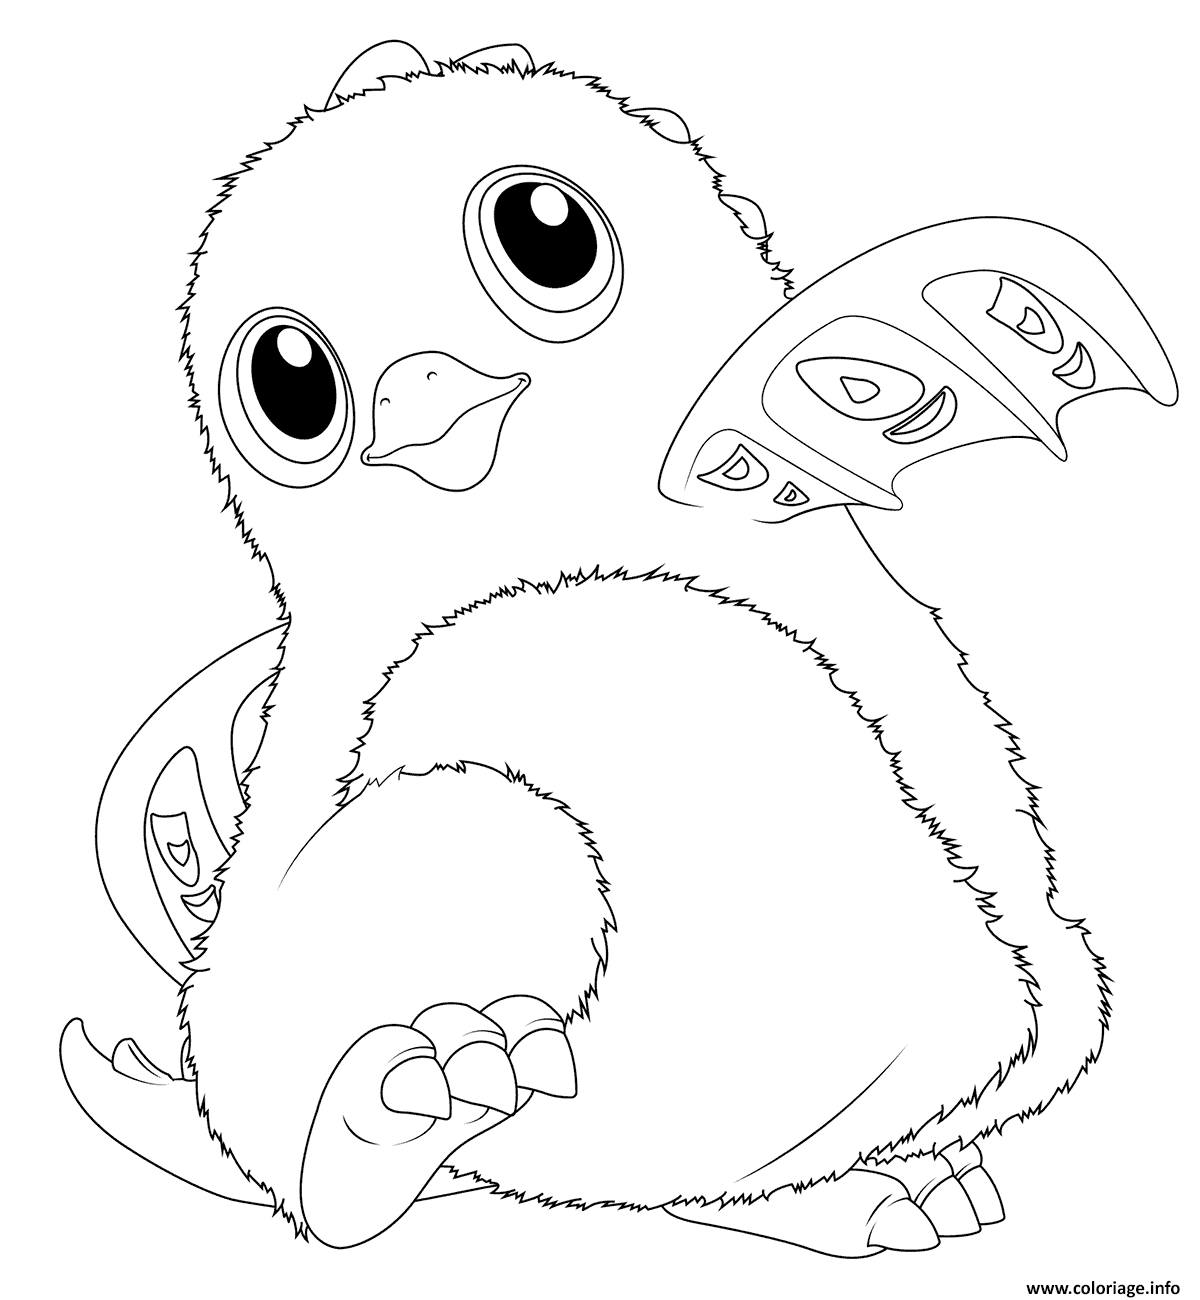 Coloriage Hatchimals Draggles - JeColorie.com